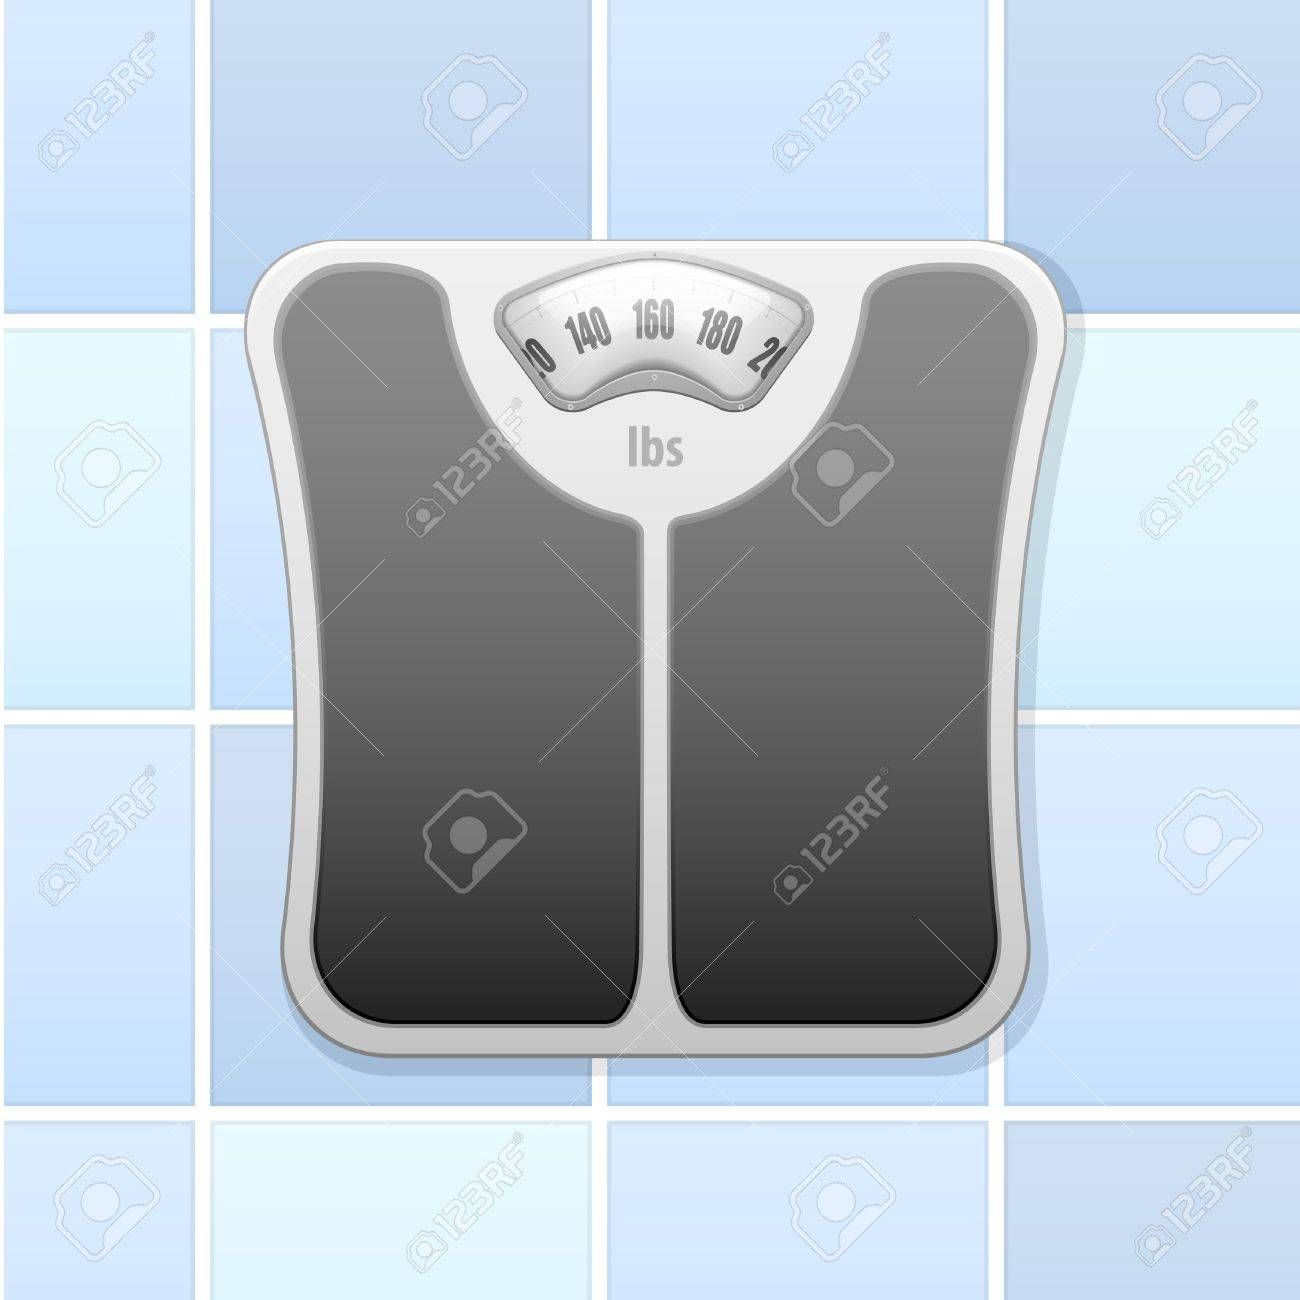 Detailed Illustration Of An Analog Bathroom Scale Stock Vector   18689605